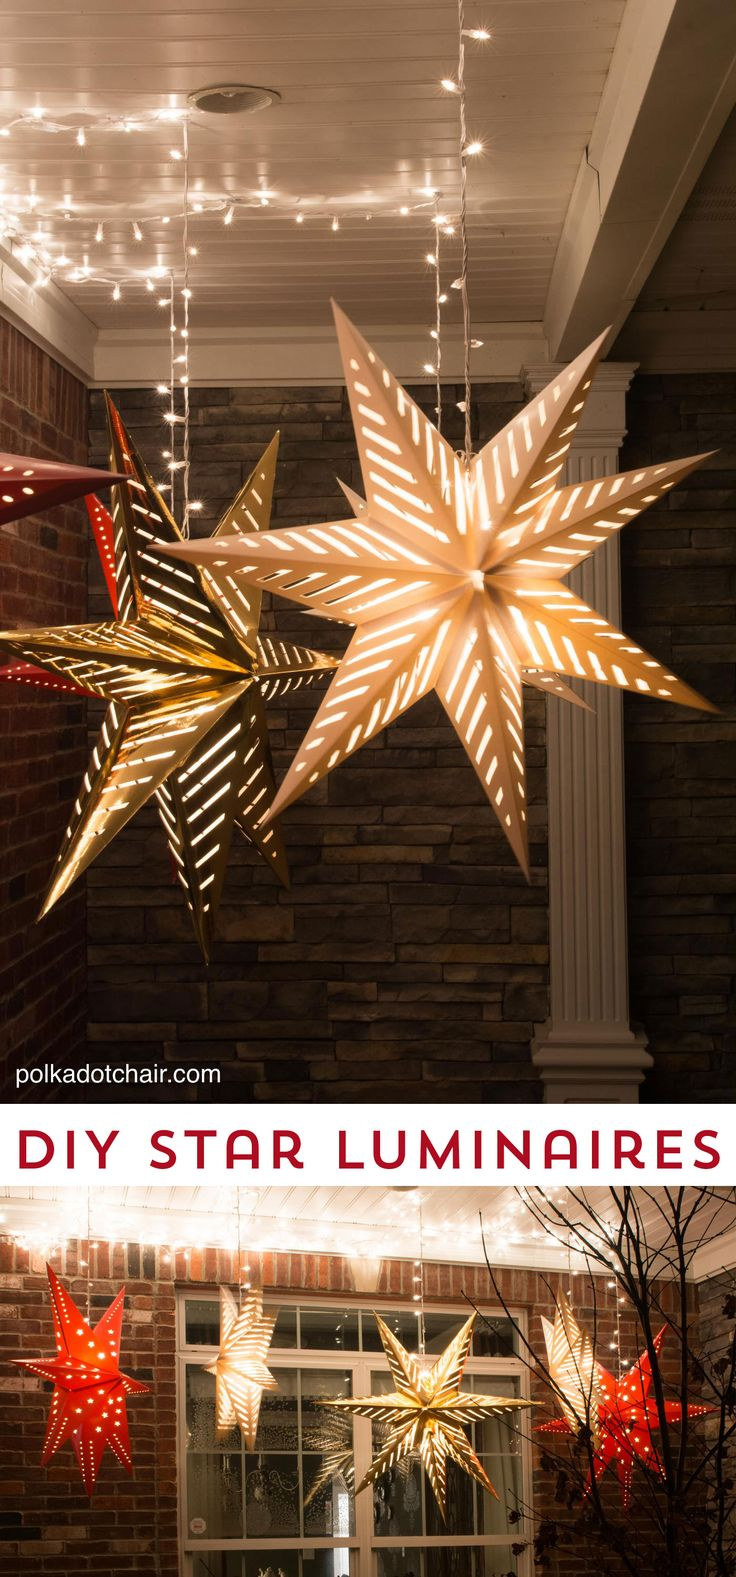 Paper stars how to make 5 pointed 3 d craft thyme - Hanging Star Lanterns A Christmas Front Porch Decorating Idea